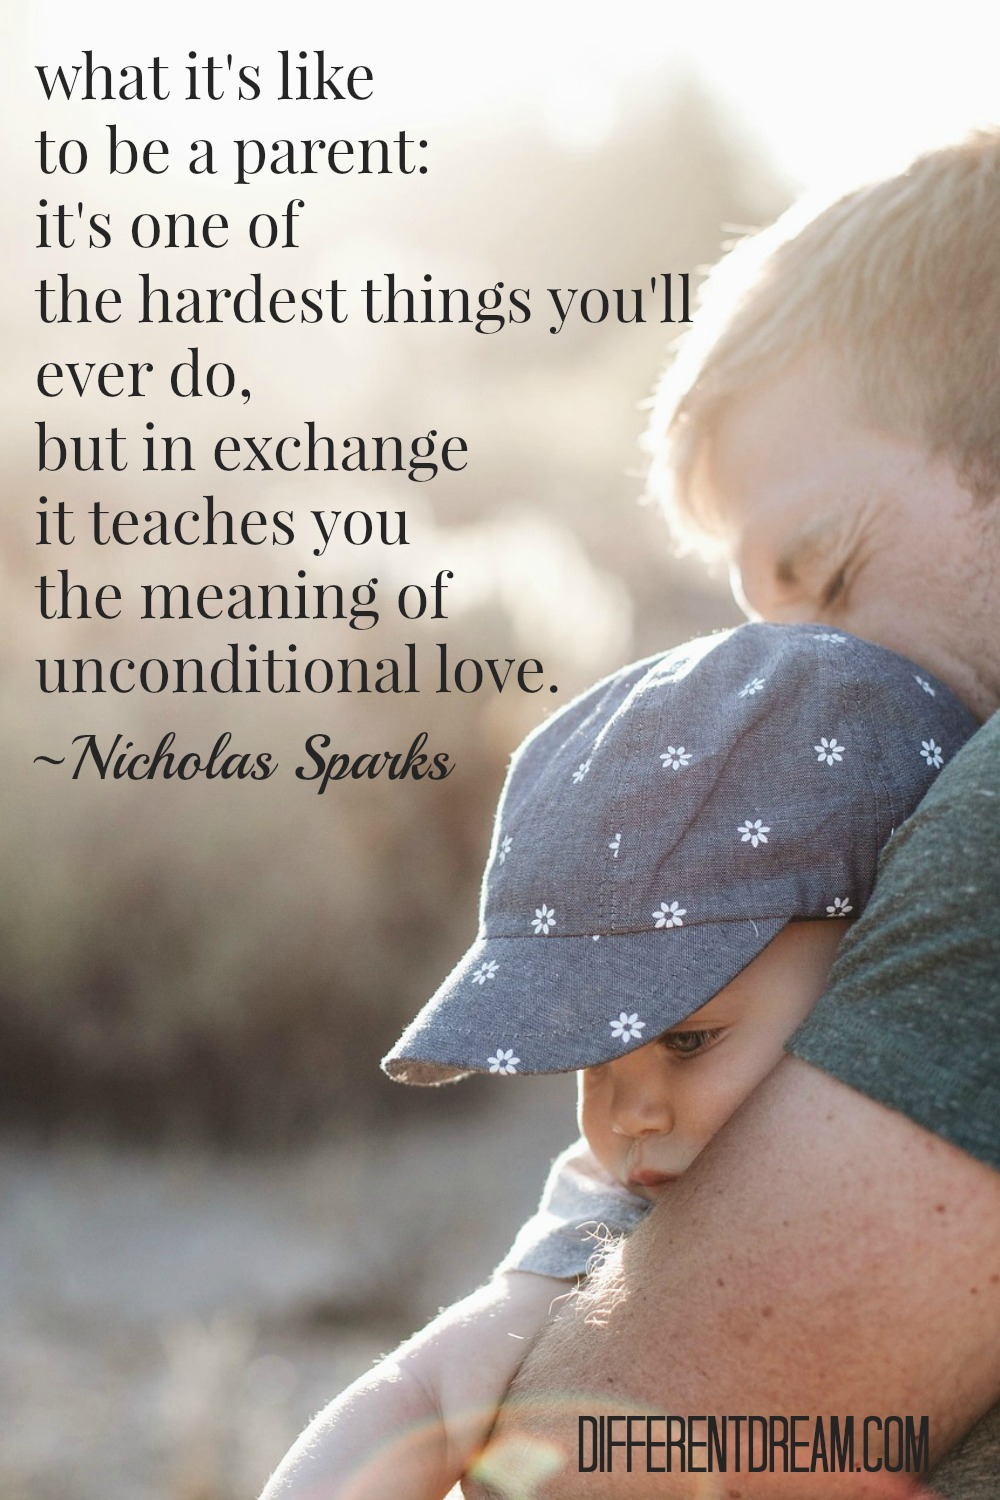 What it's like to be a parent: It's one of the hardest things you'll ever do but in exchange it teaches you the meaning of unconditional love. ~ Nicholas Sparks